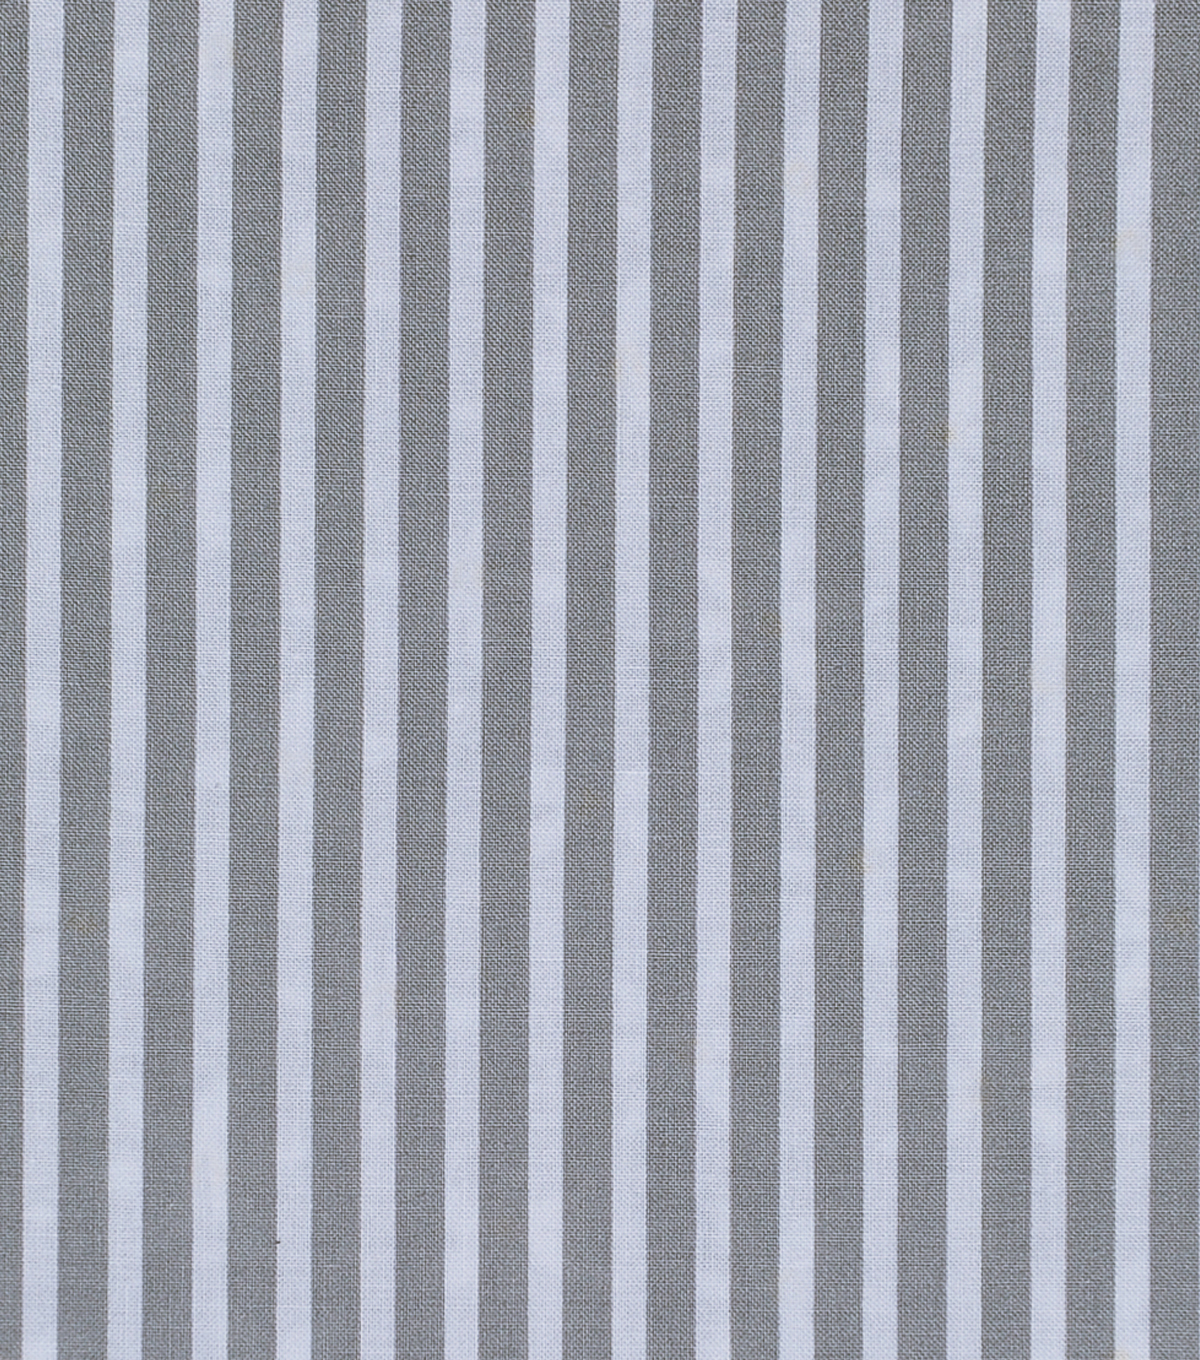 Keepsake Calico Cotton Fabric-Gray & White Stripe